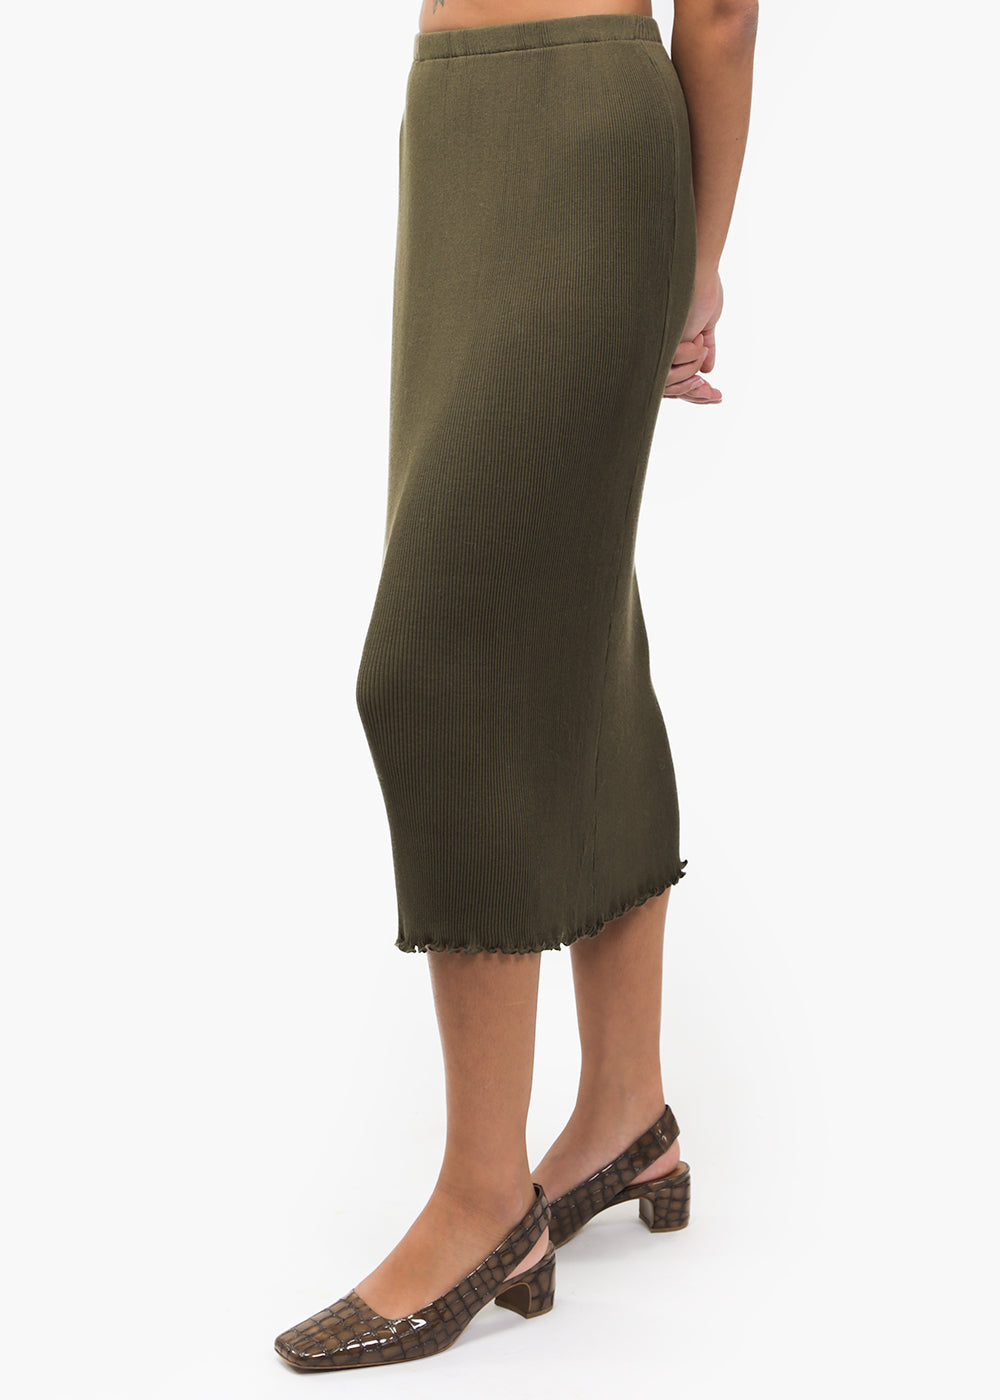 Lauren Manoogian Olive Accordion Skirt — New Classics Studios